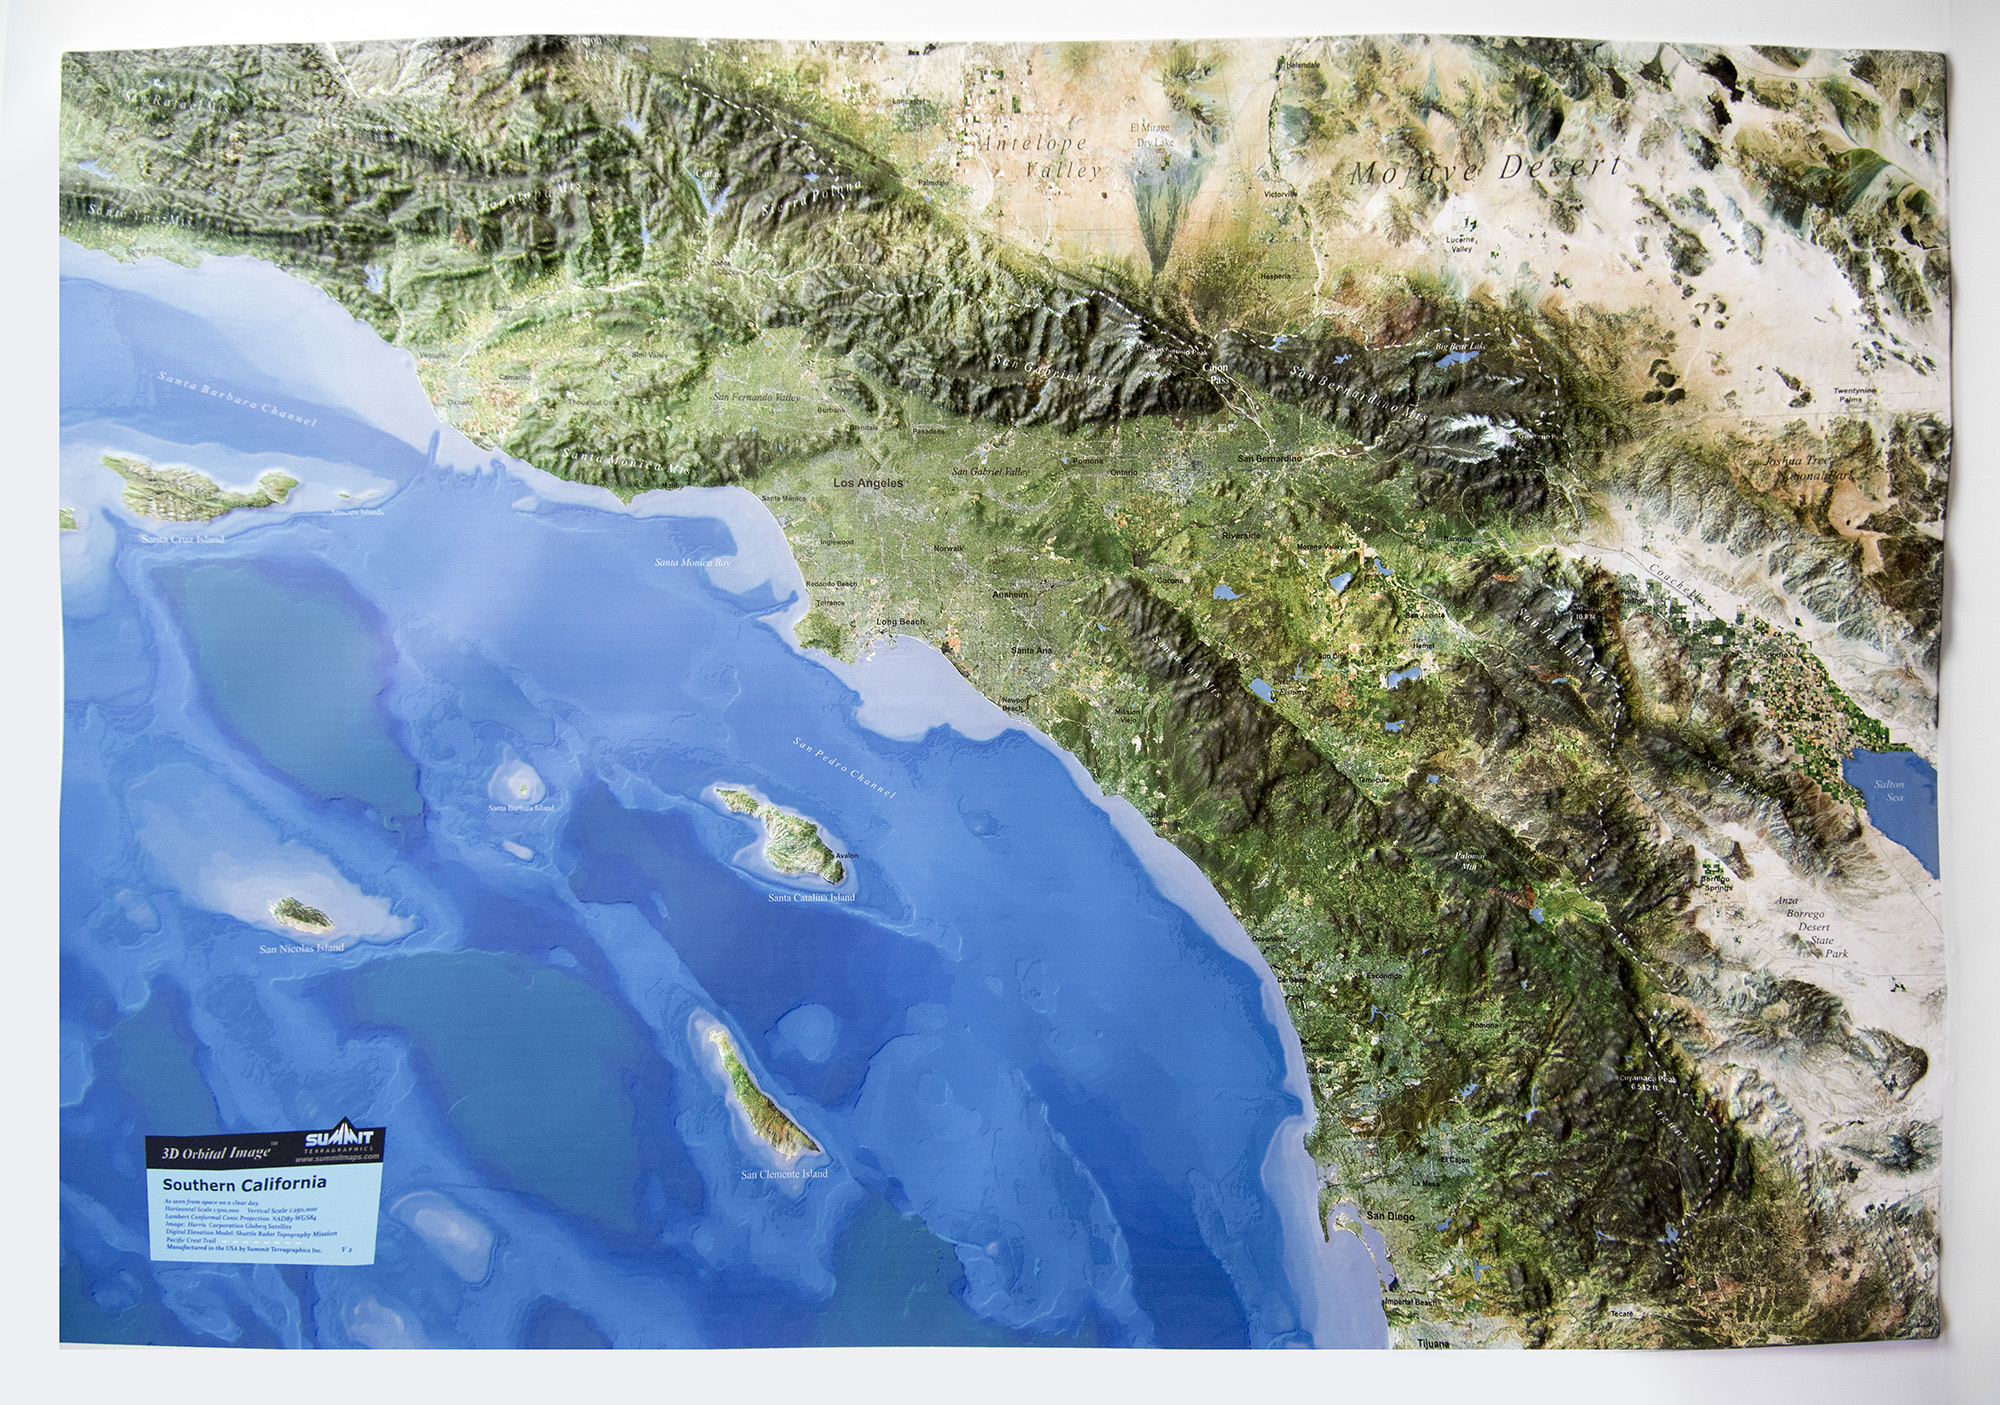 southern california 3d earth image map summit maps